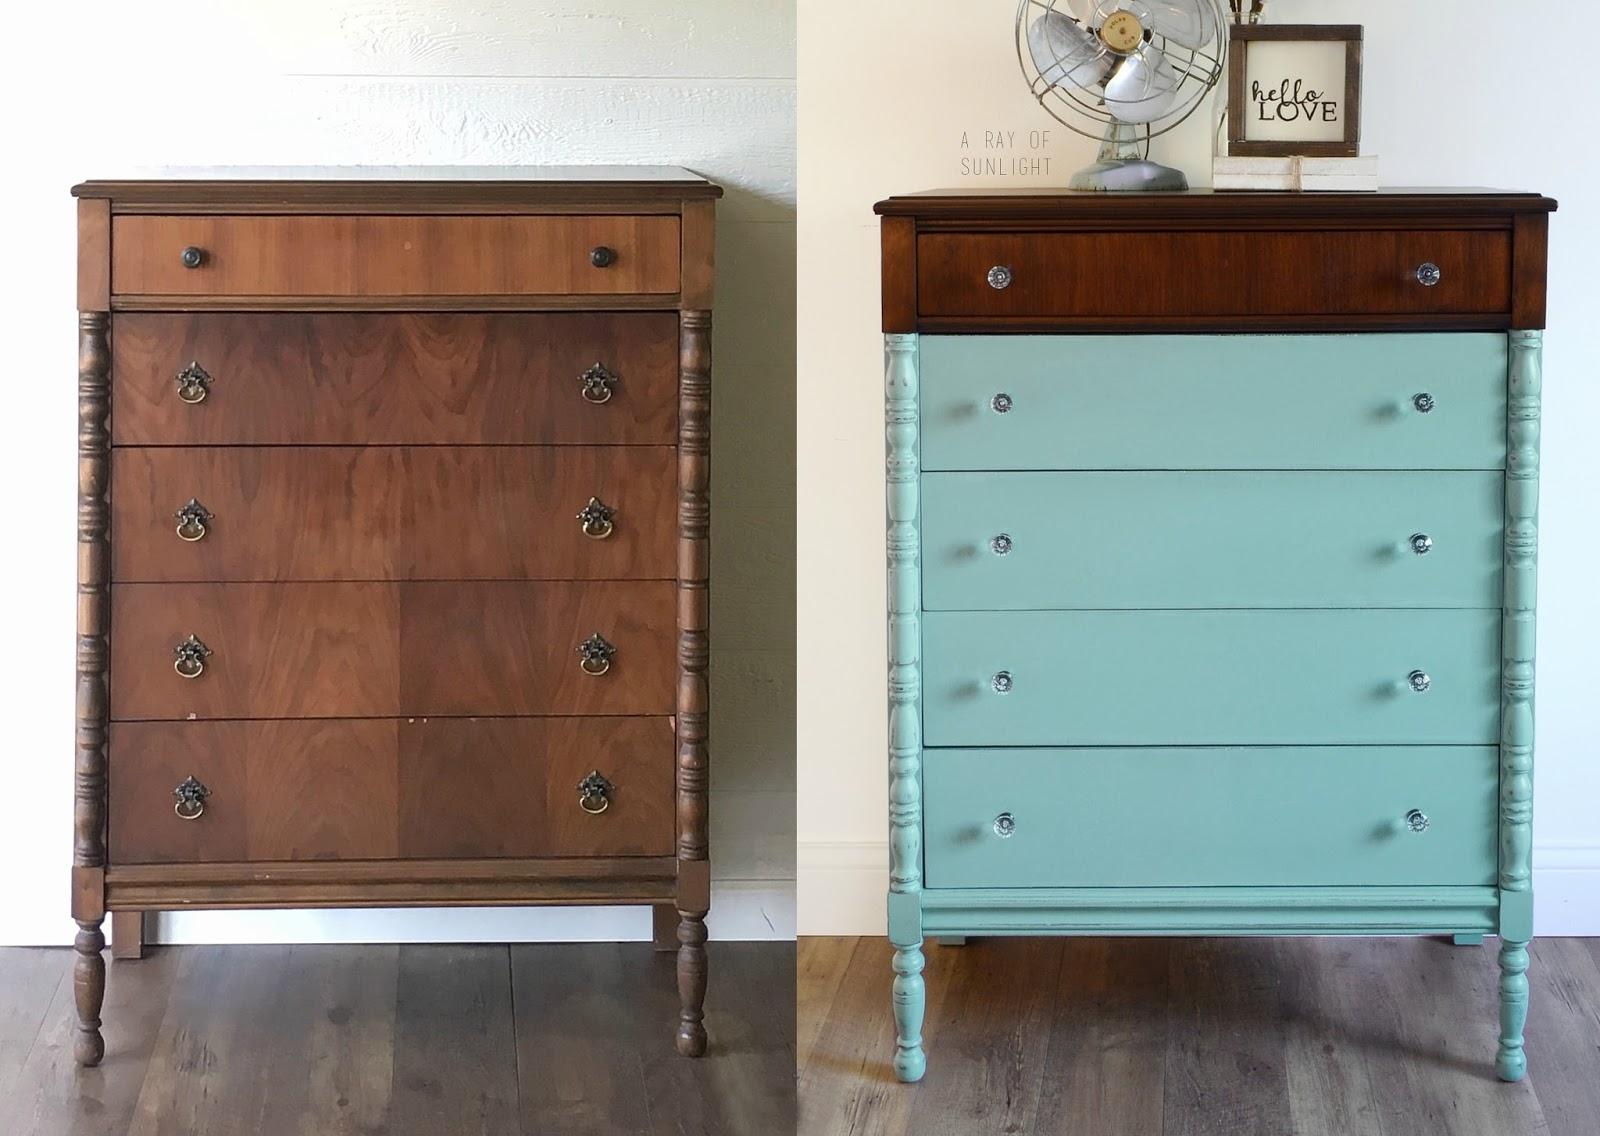 How to get a paint dipped look on any furniture. This dresser was painted in Country Chic Paint Jitterbug and Happy Hour with General Finishes Java Gel Stain. By A Ray of Sunlight